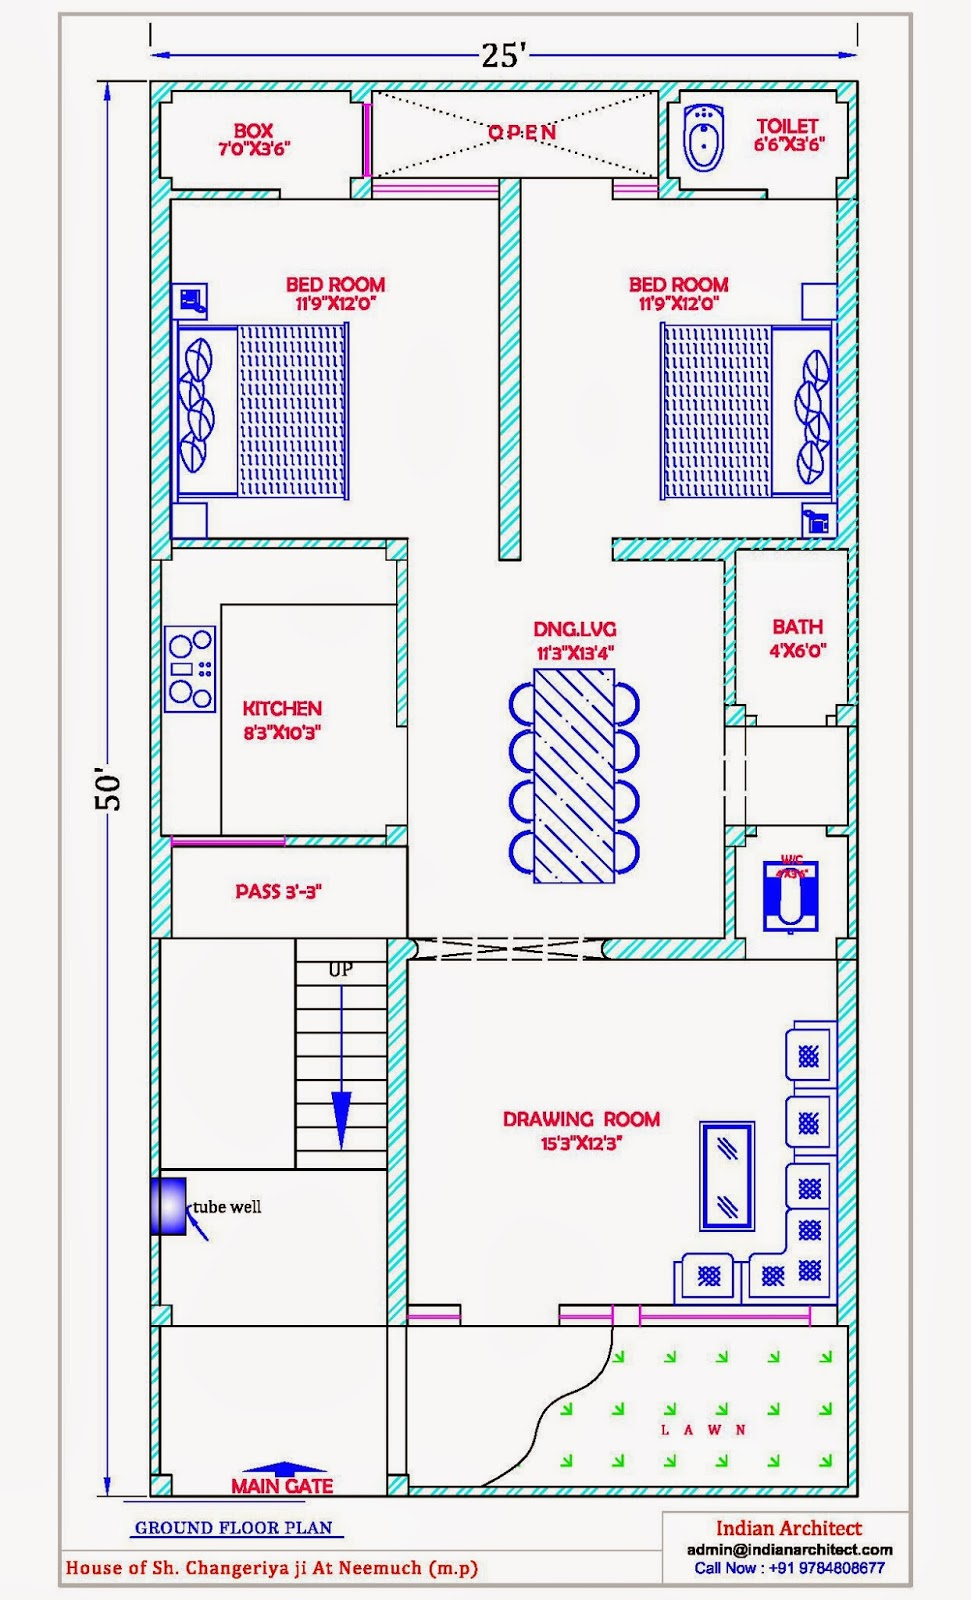 Mr changeriya ji house plan exterior design at neemuch for Indian home map plan